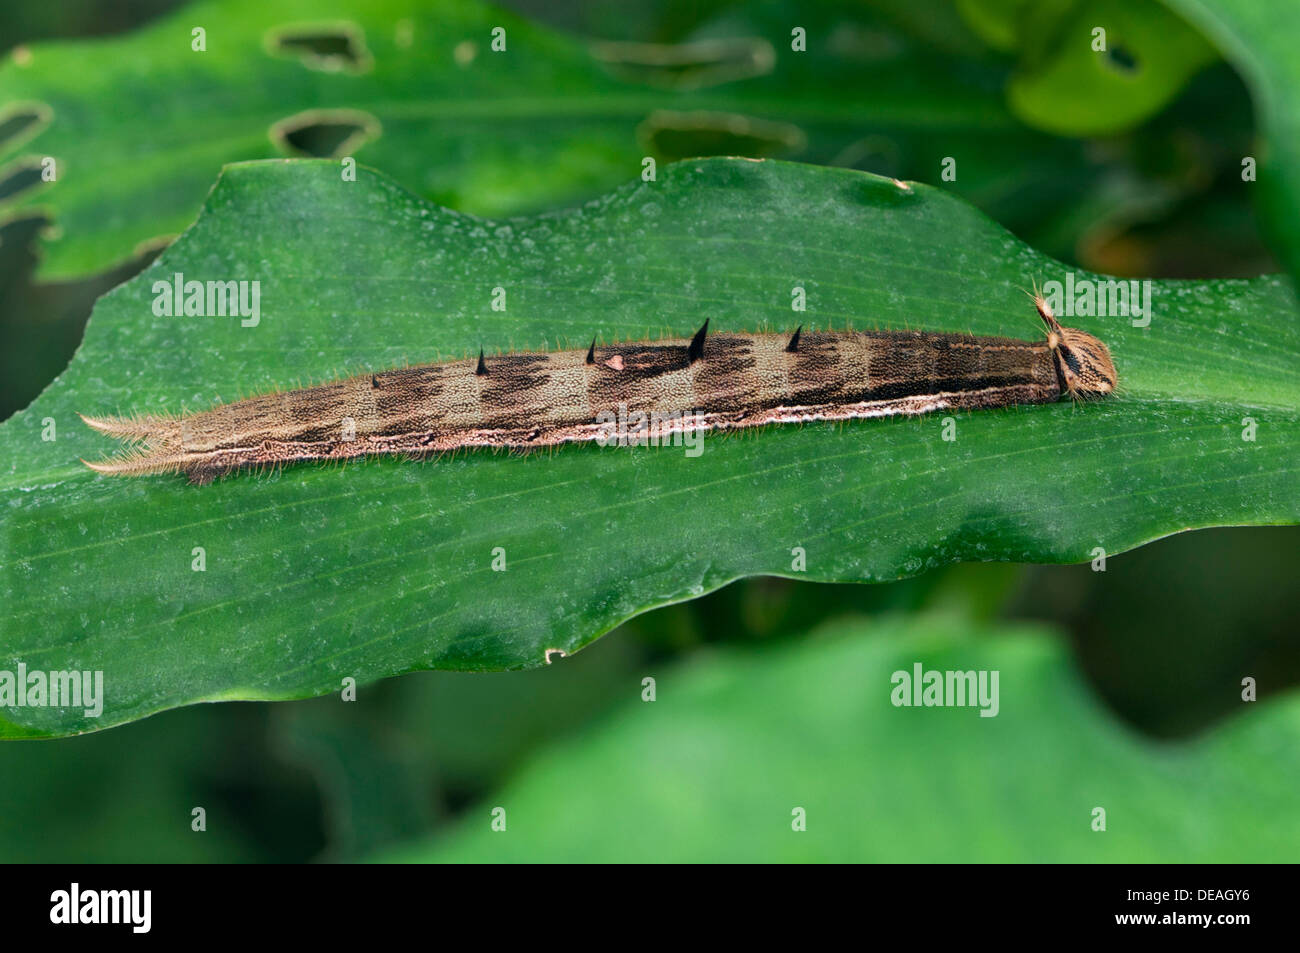 Caterpillar of an Owl Butterfly (Caligo sp.), Kerzers, Switzerland - Stock Image